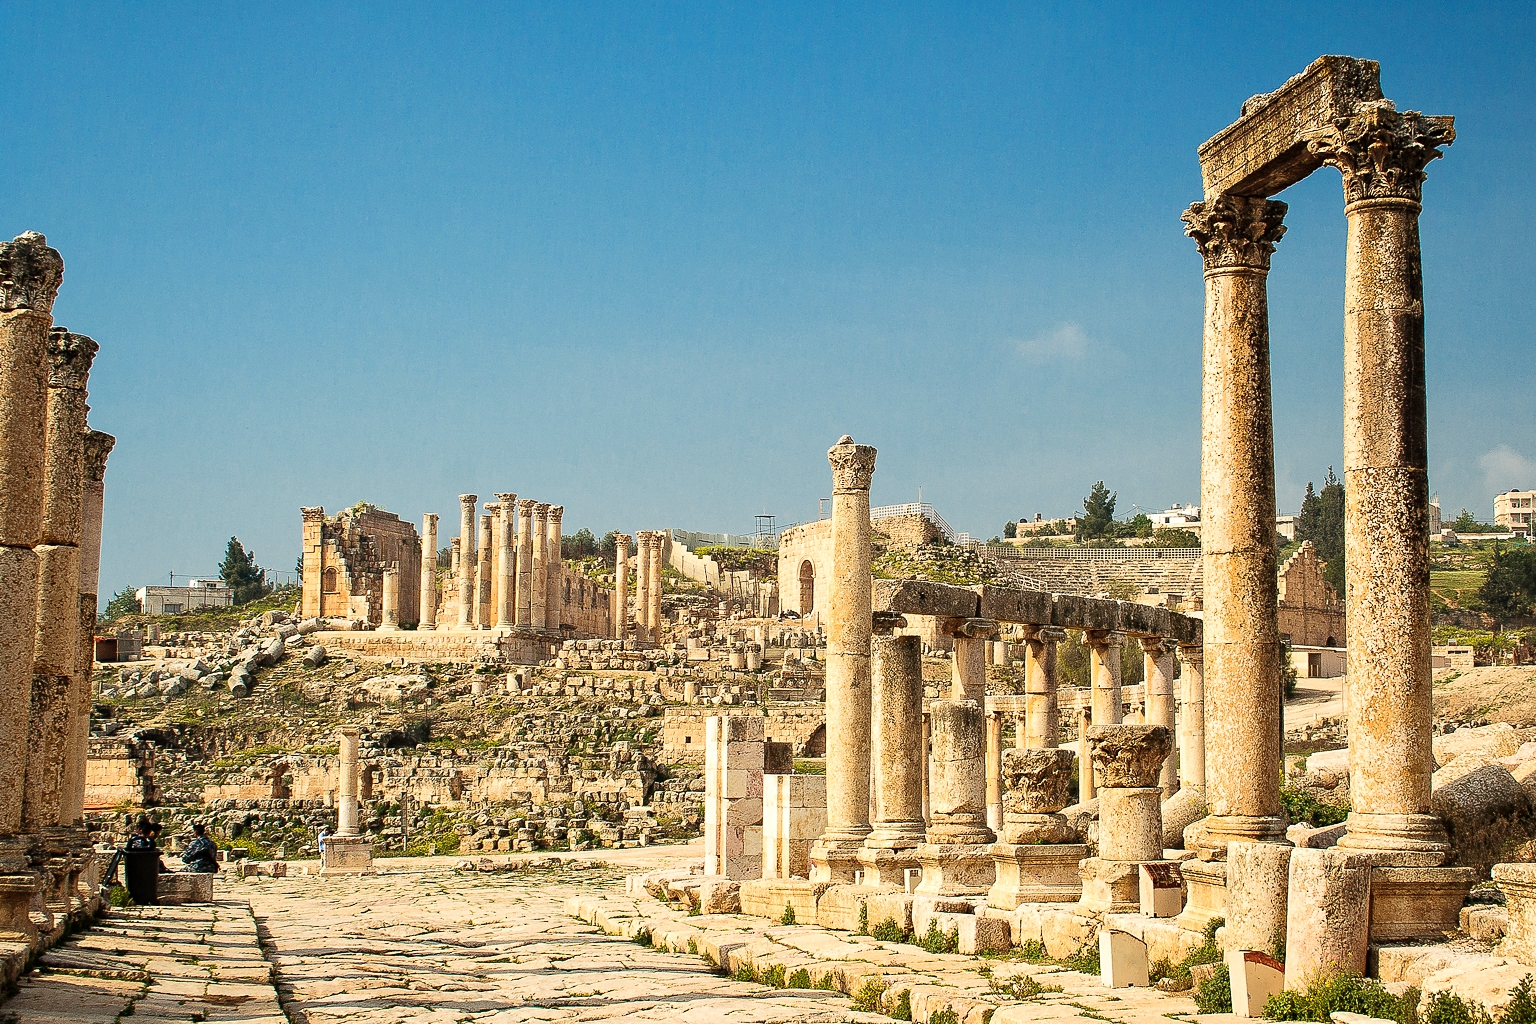 Temple of Zeus, Jerash, Jordan